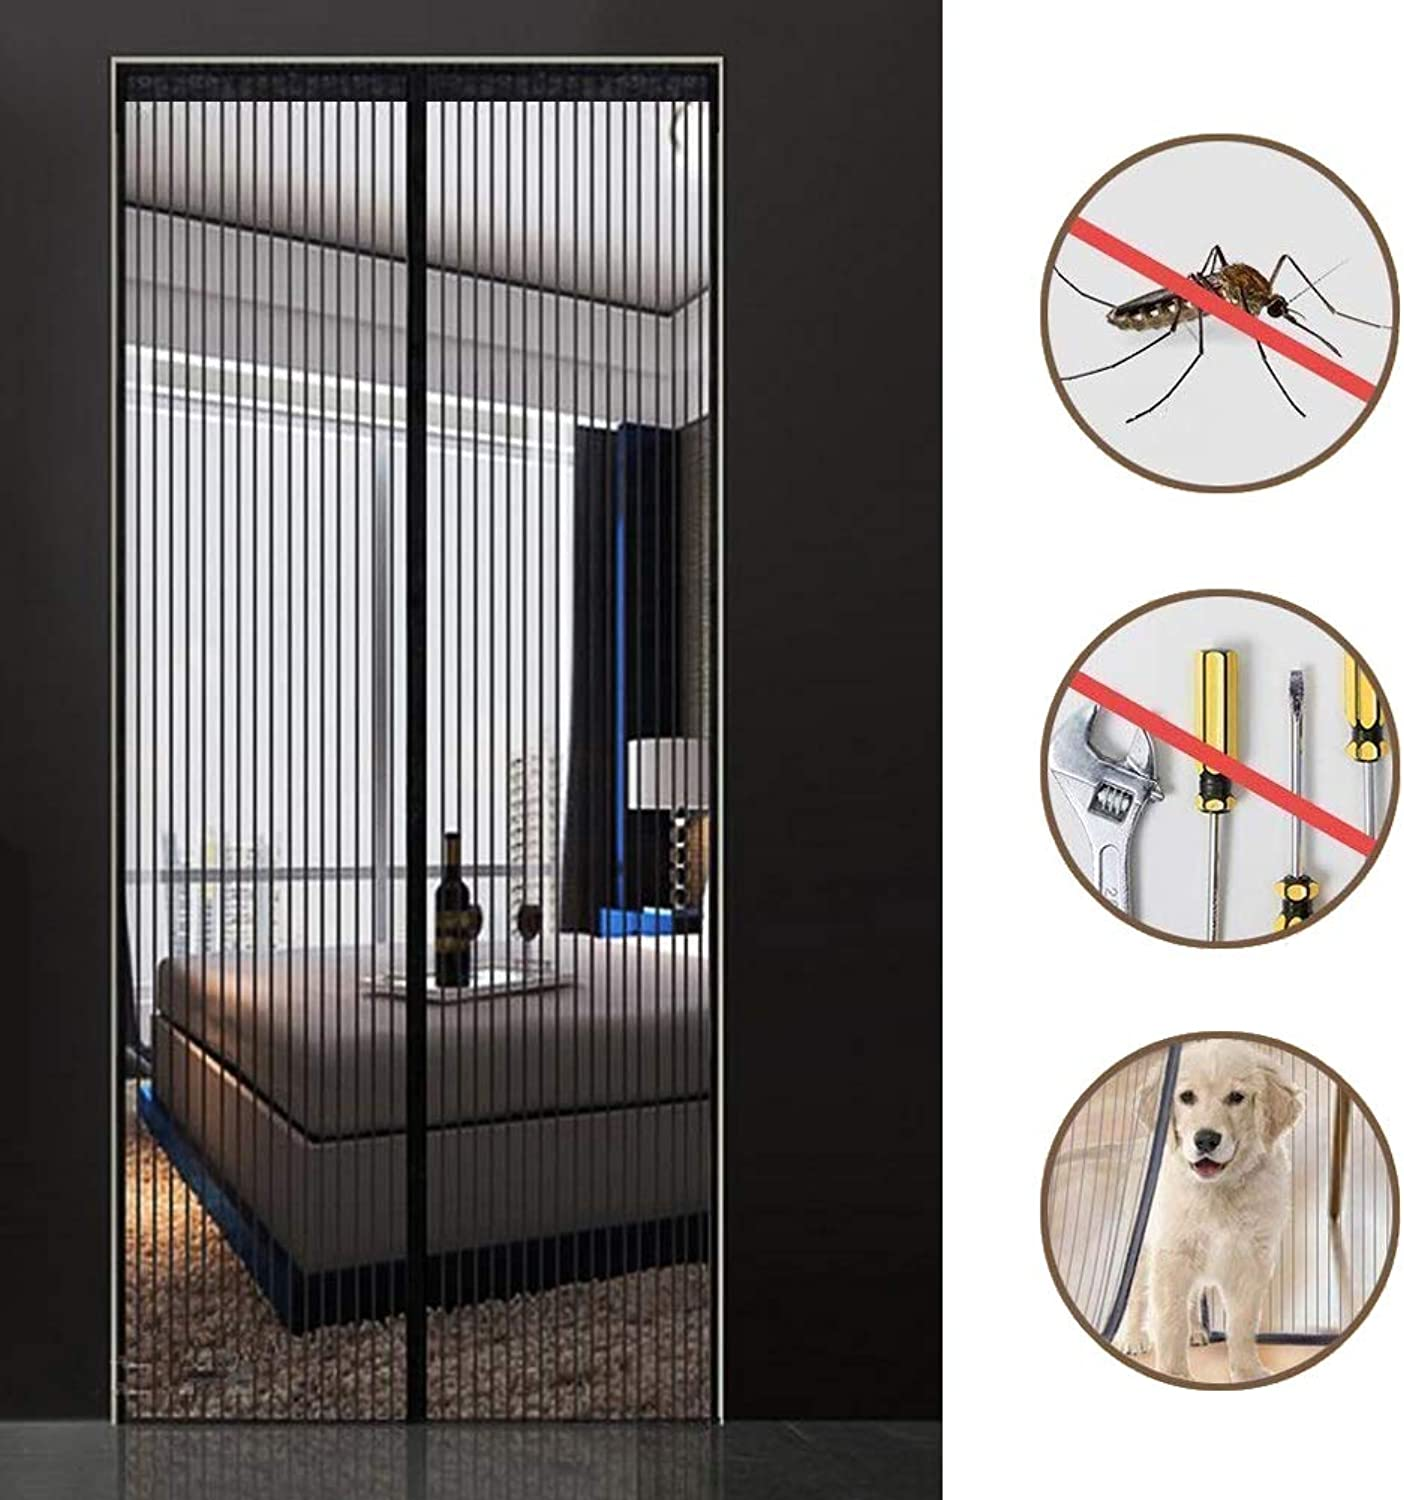 Magnetic Screen Door, Screen Easy to Install Without Drilling, Heavy Duty Screen Bug Mesh Curtain Fly Screens, Super Quiet - 200(W) x 220(H) cm